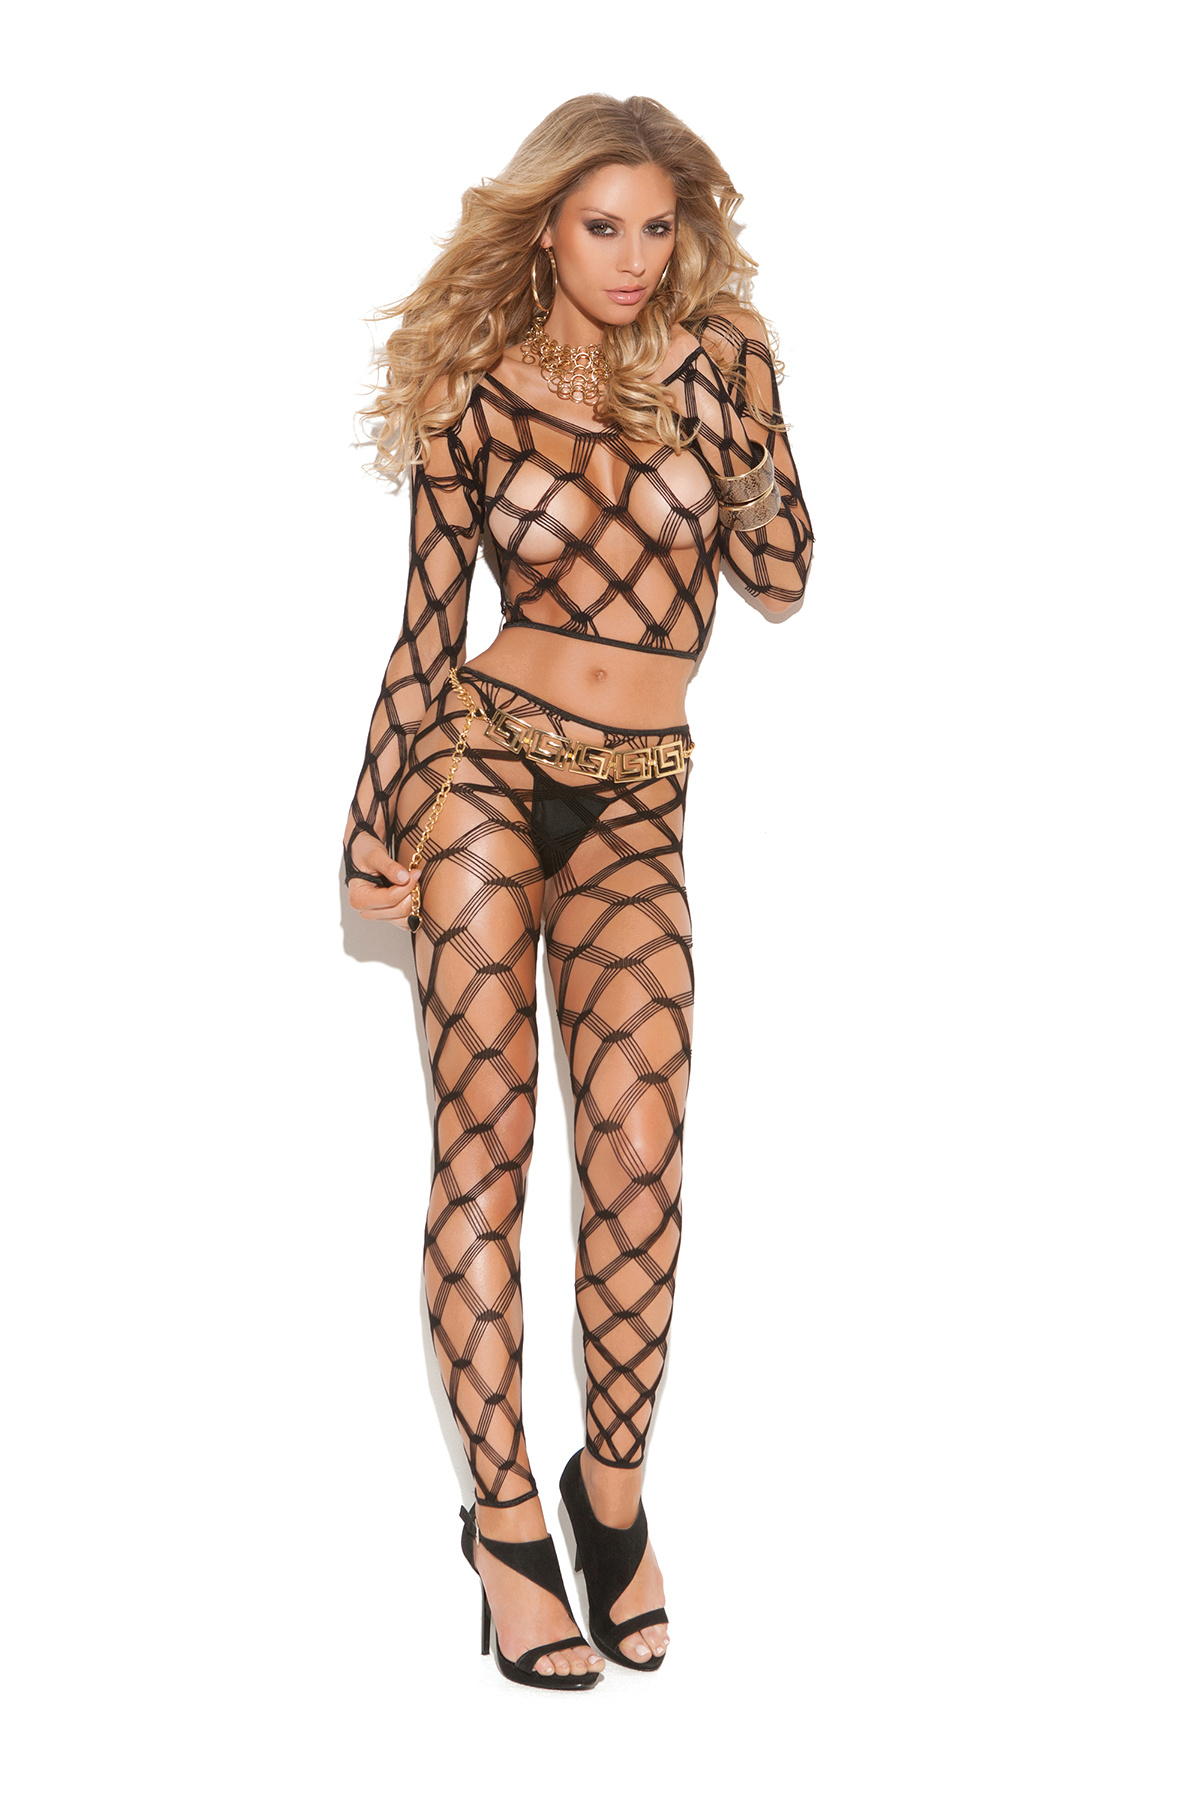 Diamond-Fishnet Top + Tights Set Black